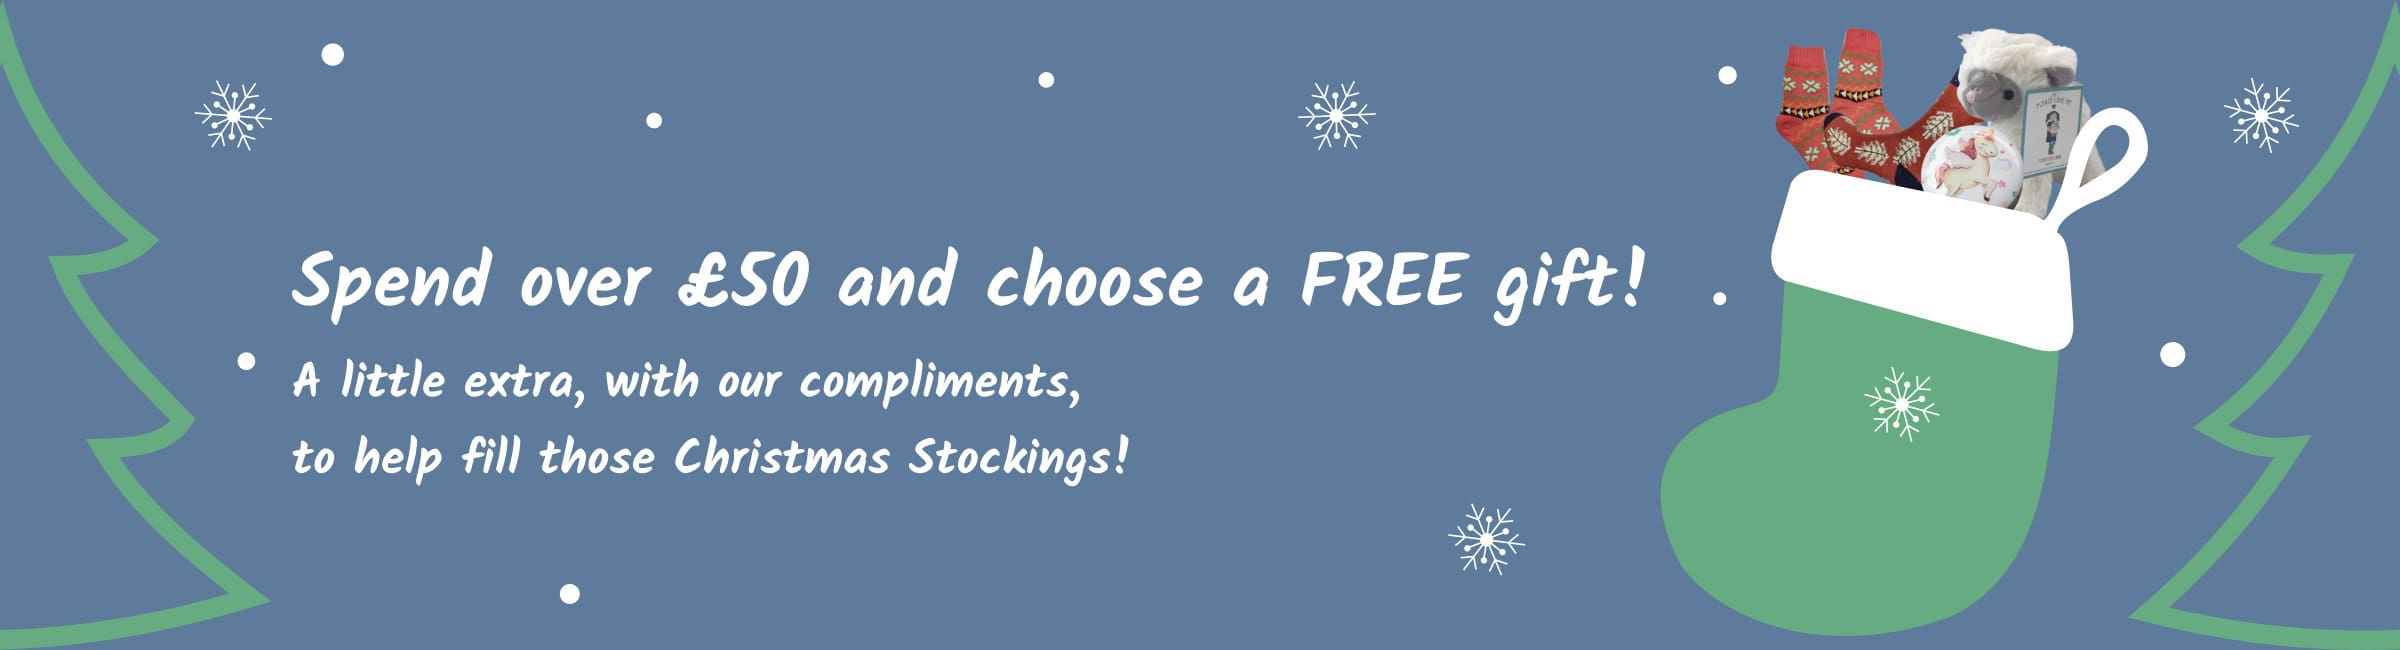 Spend over £50 and choose a FREE gift! A little extra, with our compliments, to help fill those Christmas Stockings!